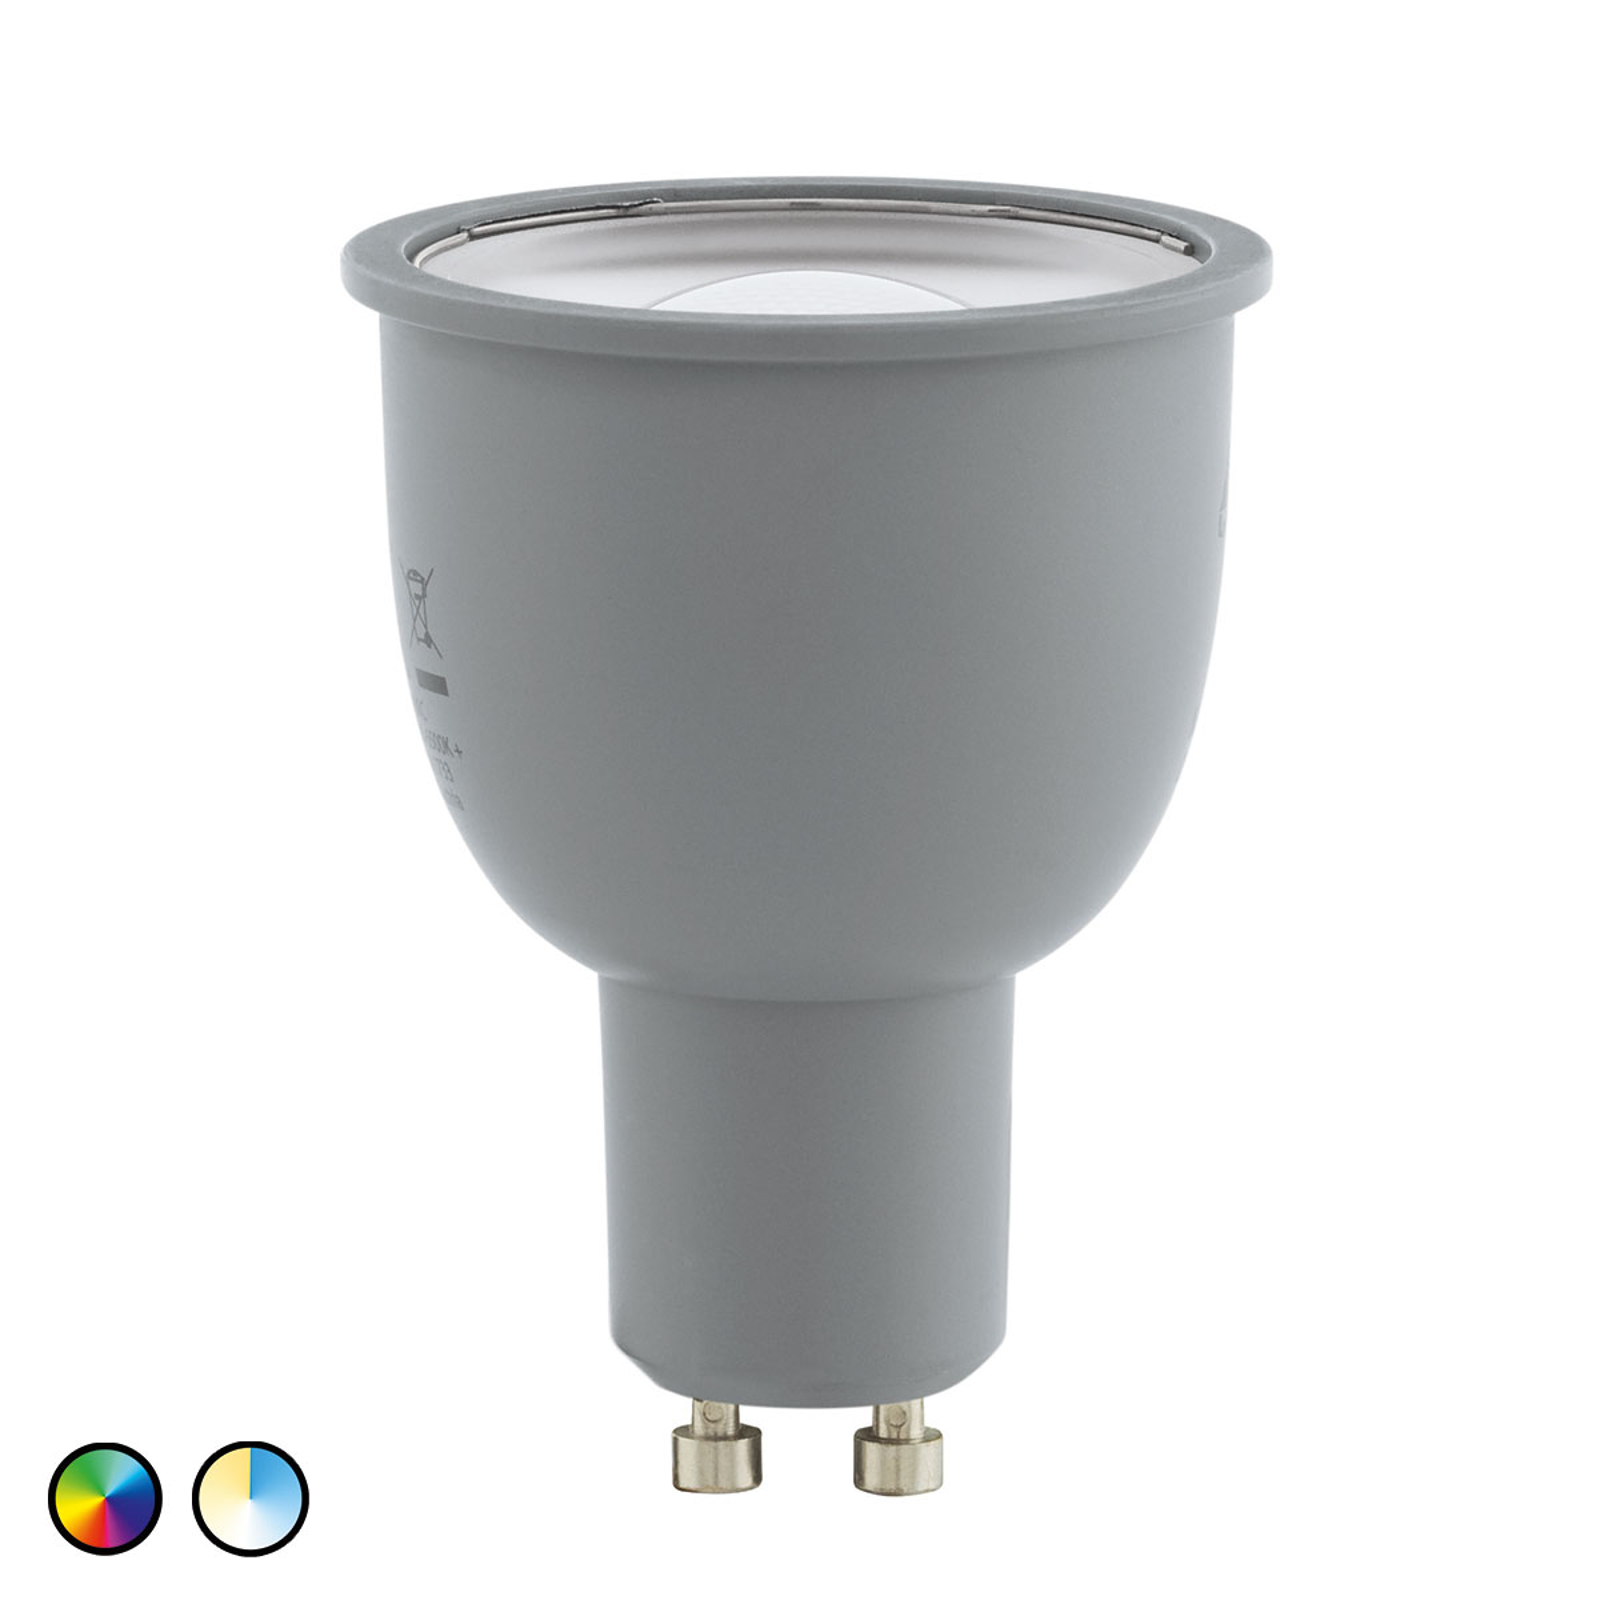 EGLO connect GU10 5 W LED RGB Tunable White